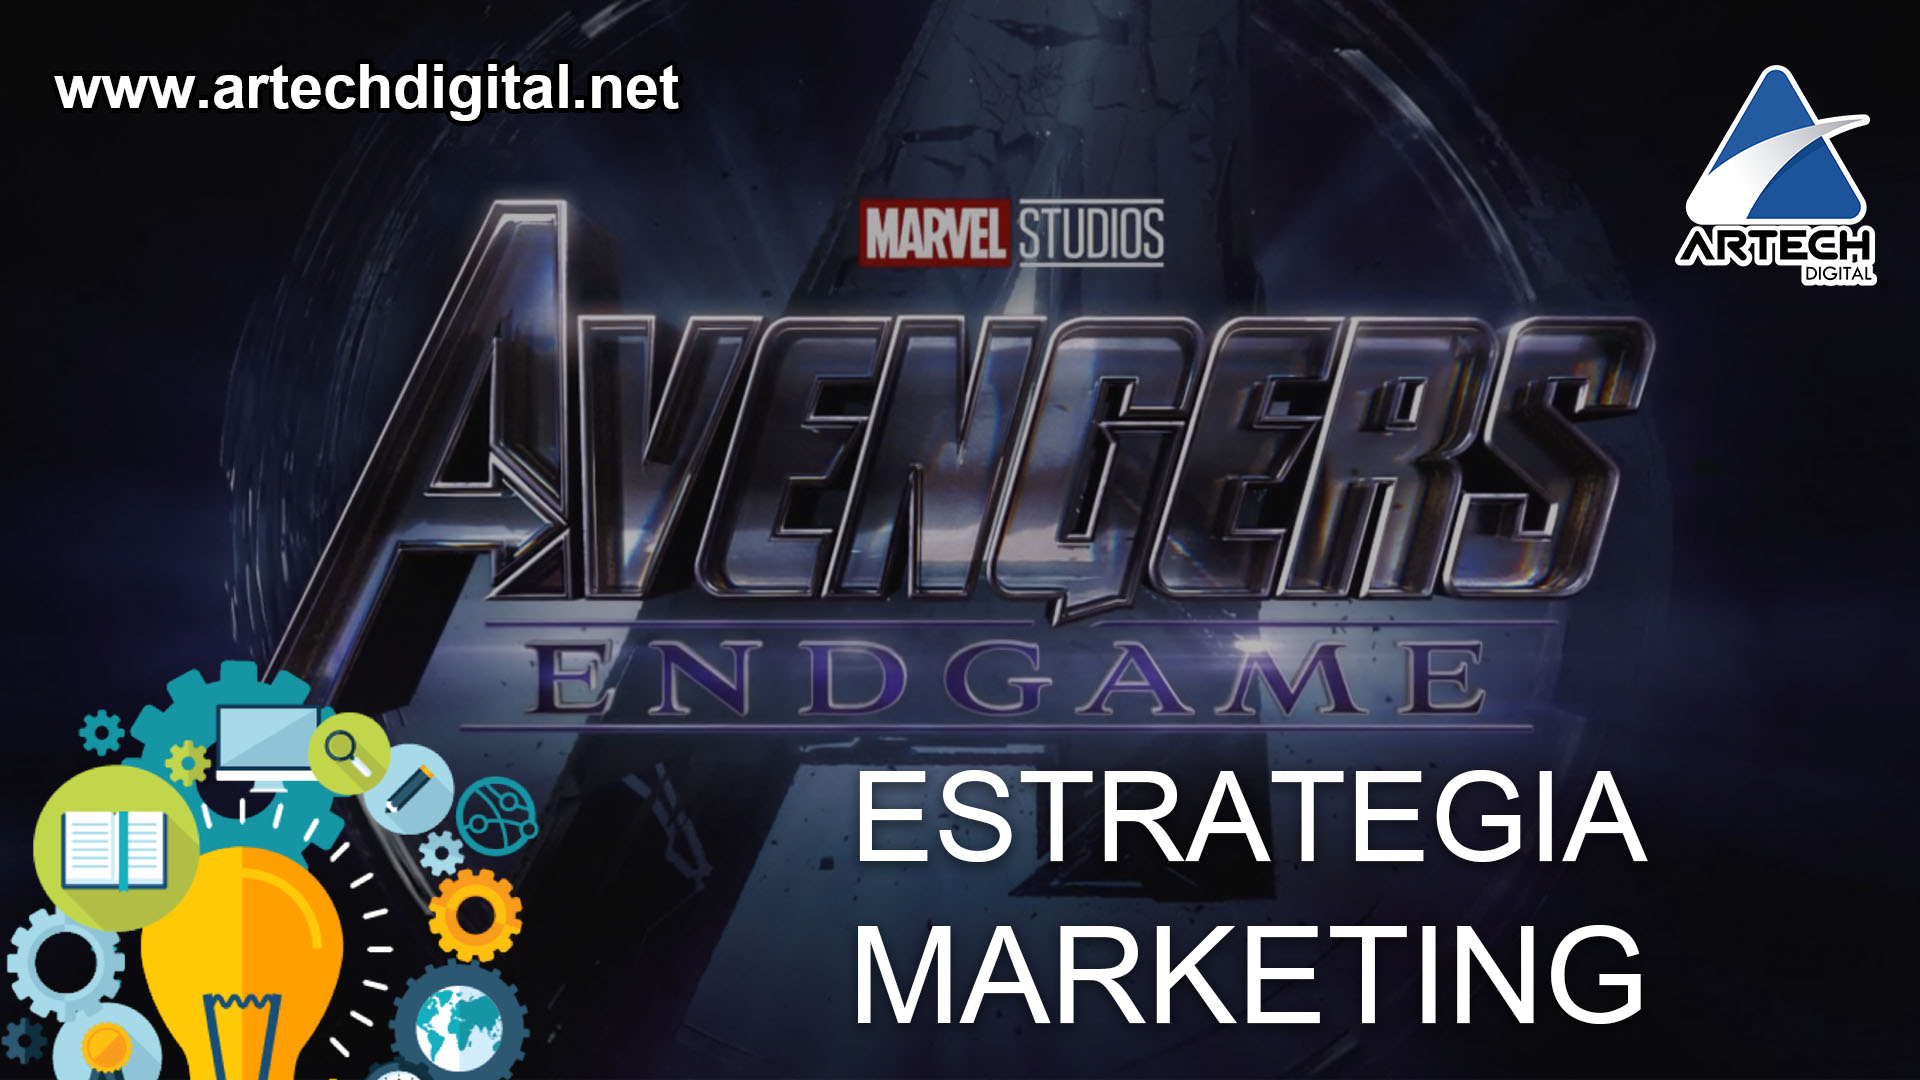 AVENGERS Endgame y sus claves de marketing digital